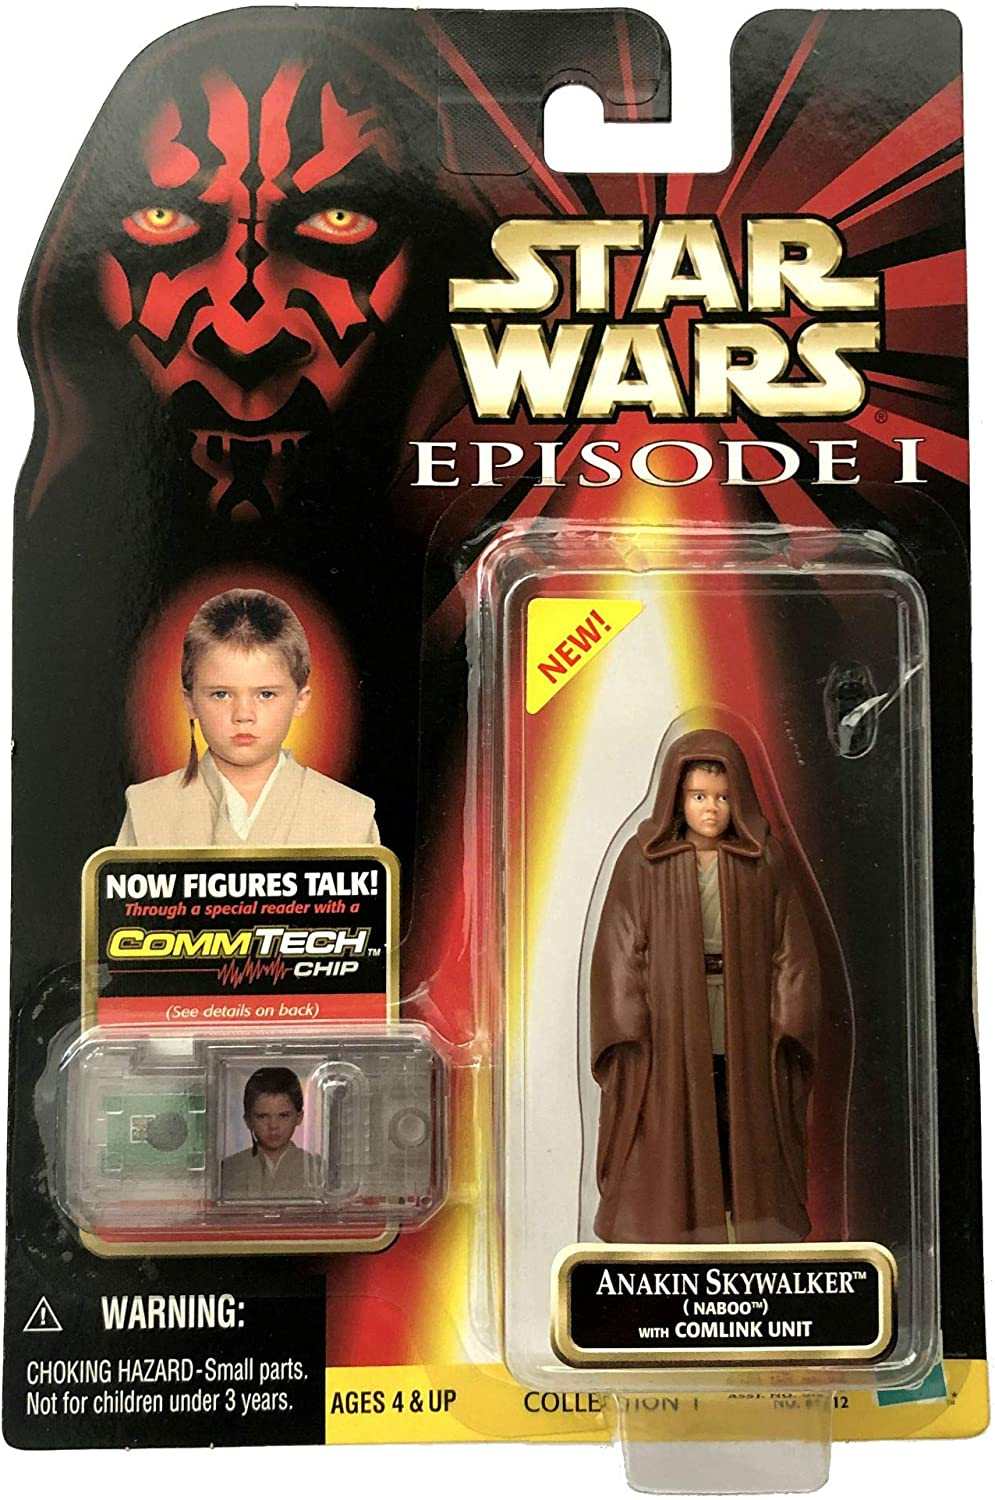 Star Wars Episode 1 Anakin Skywalker (Naboo) Action Figure